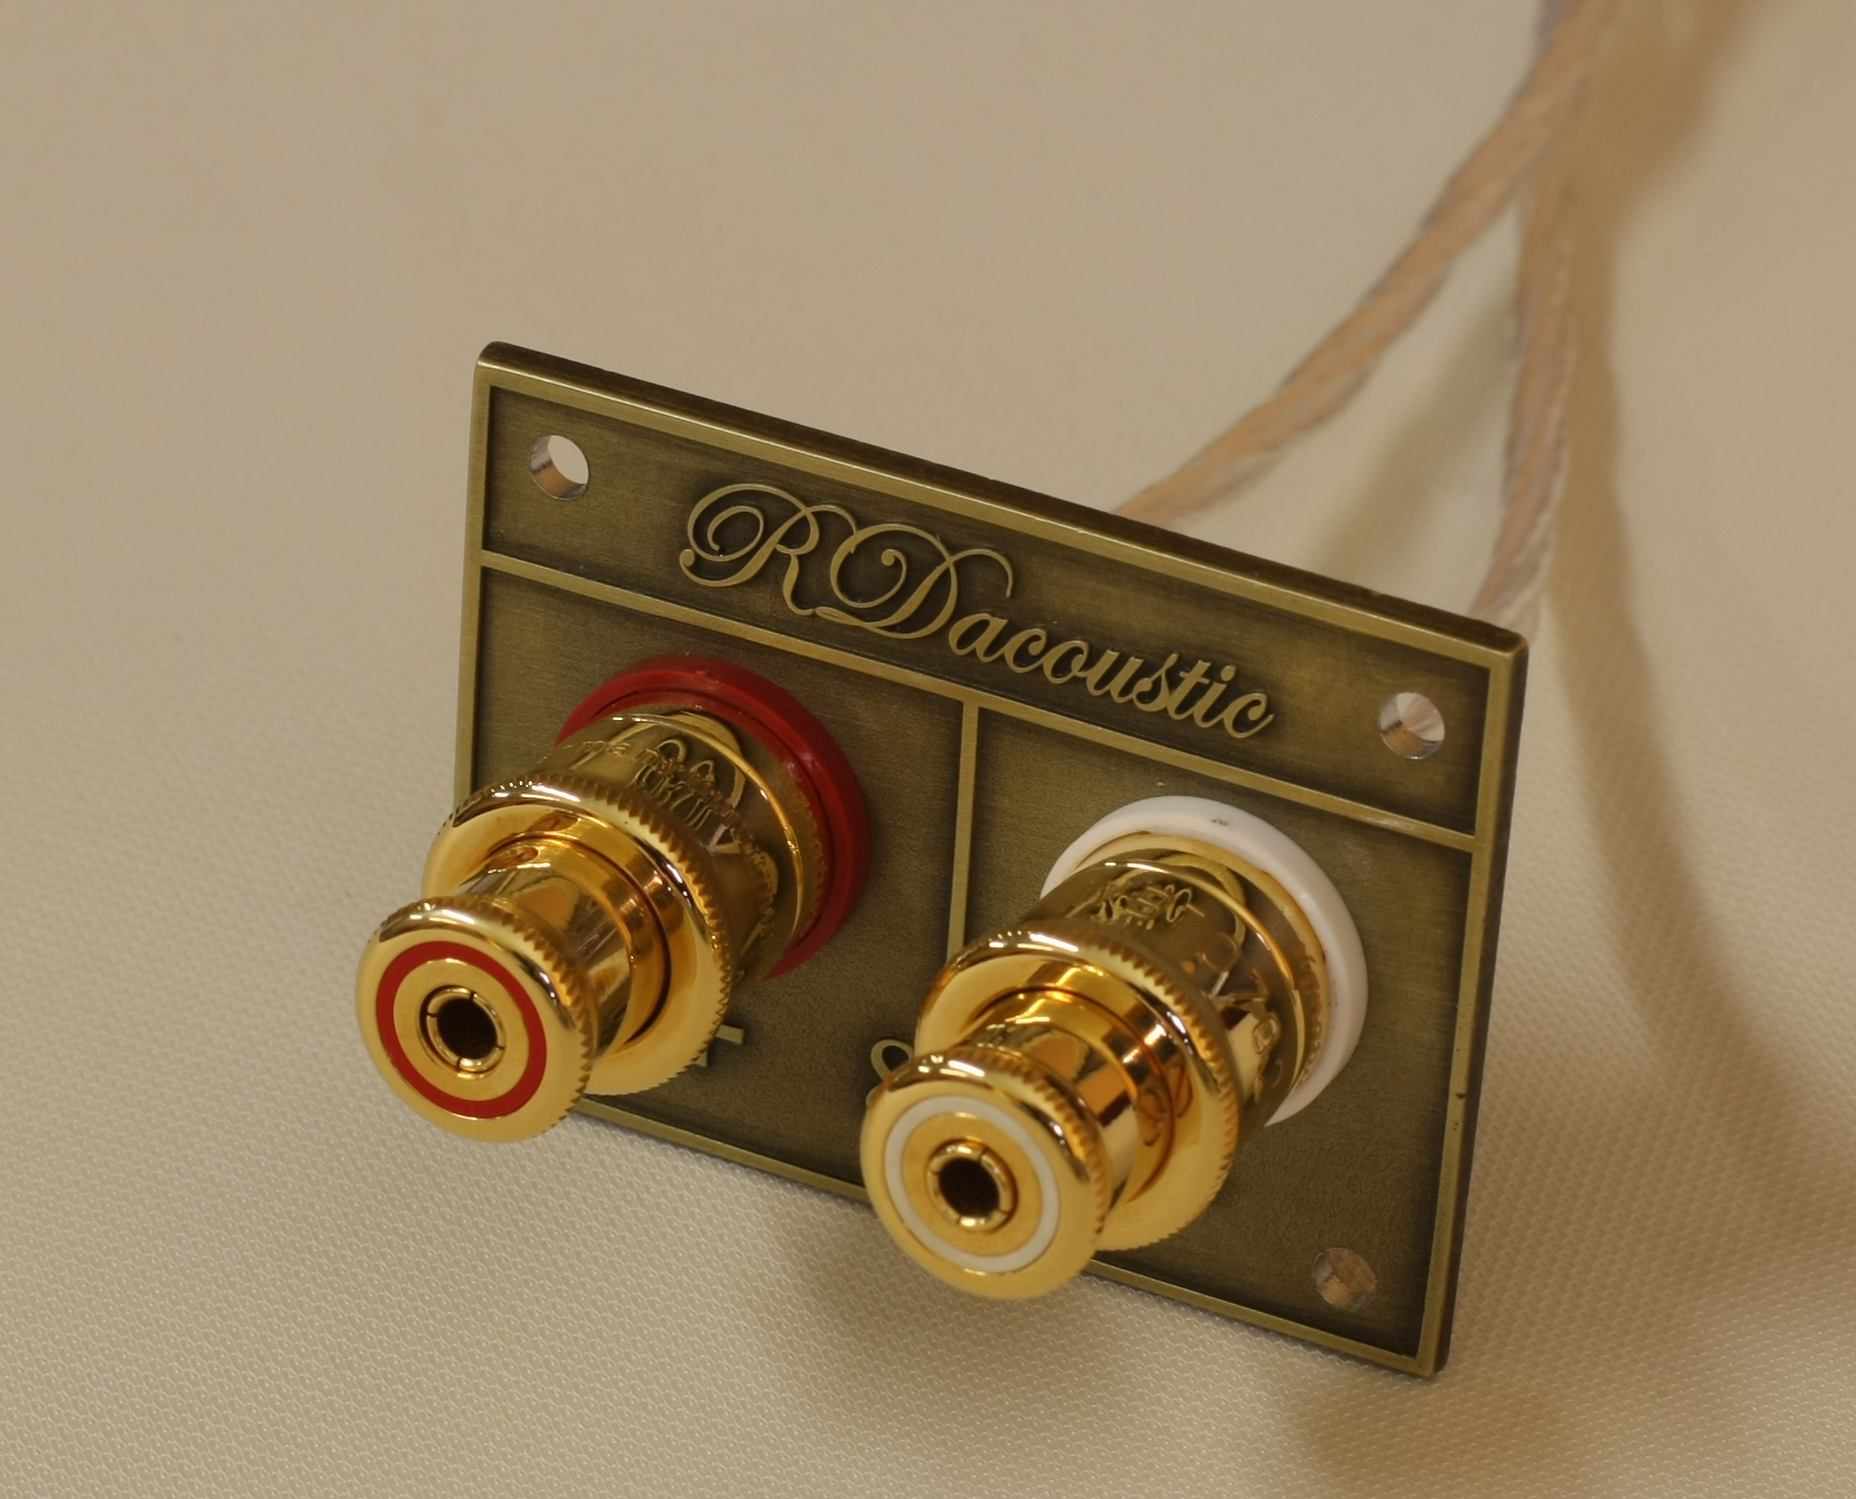 RDacoustic High-End speaker terminals WBT 702.11 Gold plated